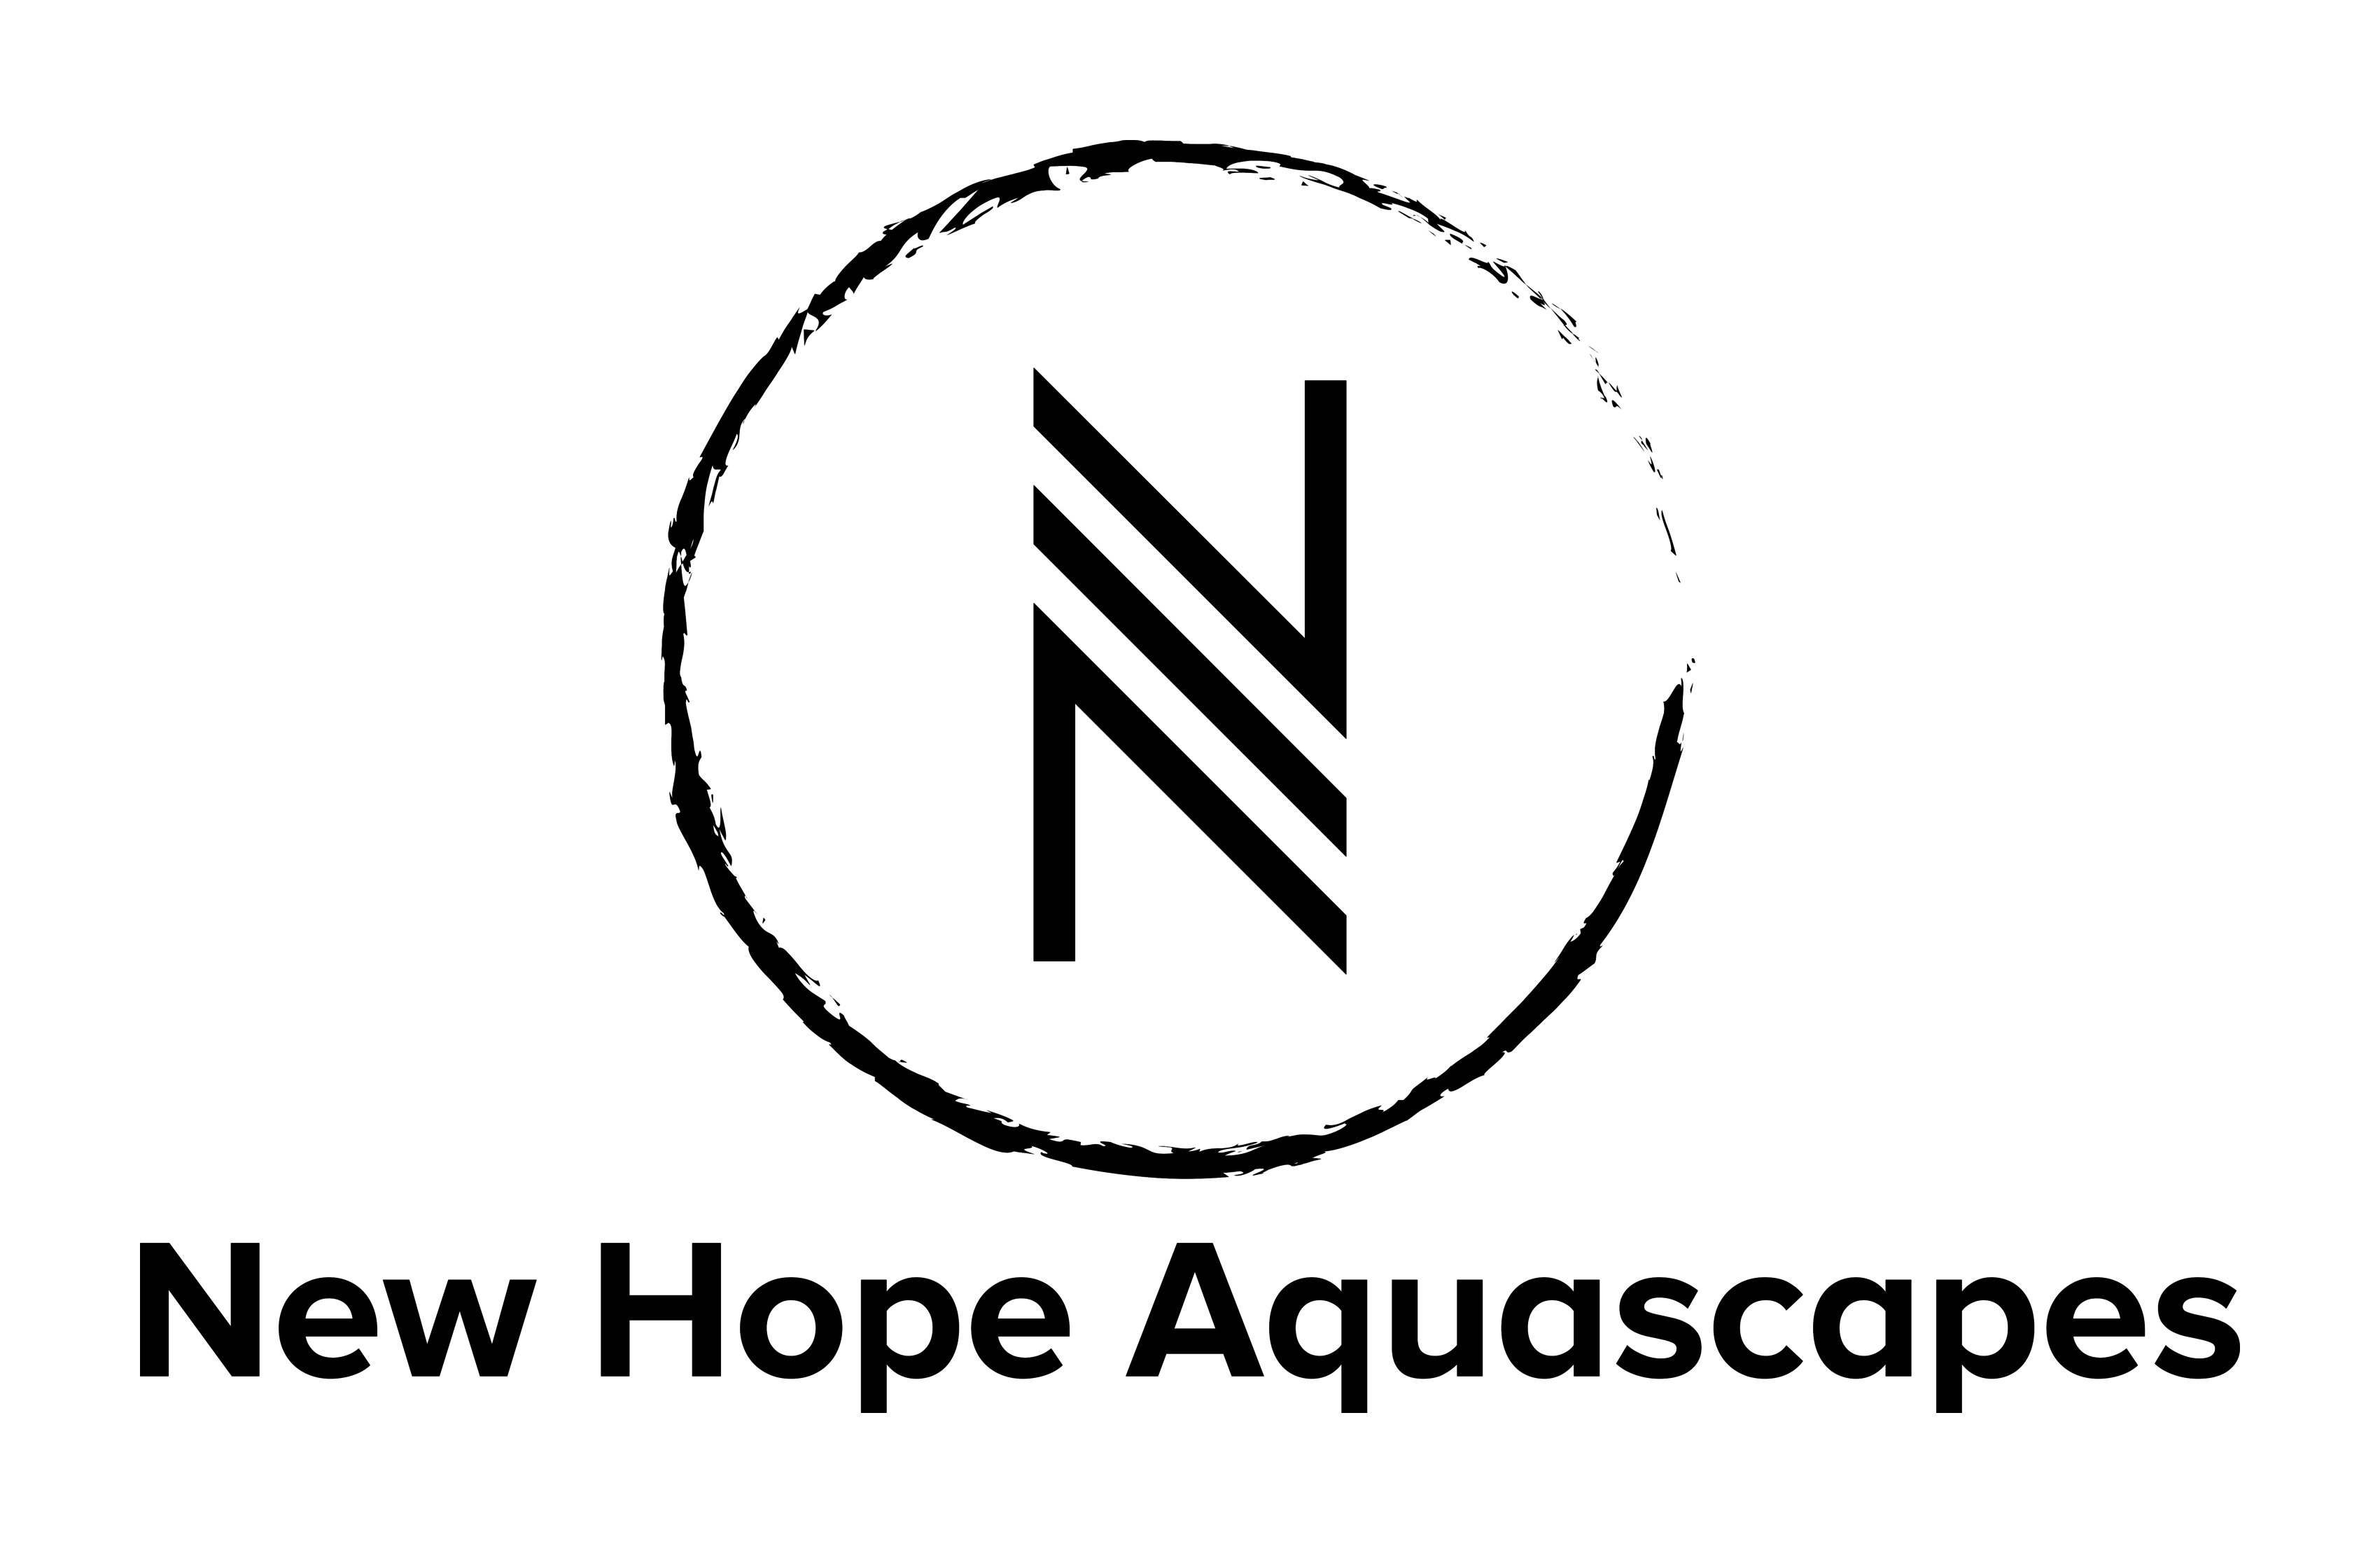 Logo Aquascape - Aquascape Ideas